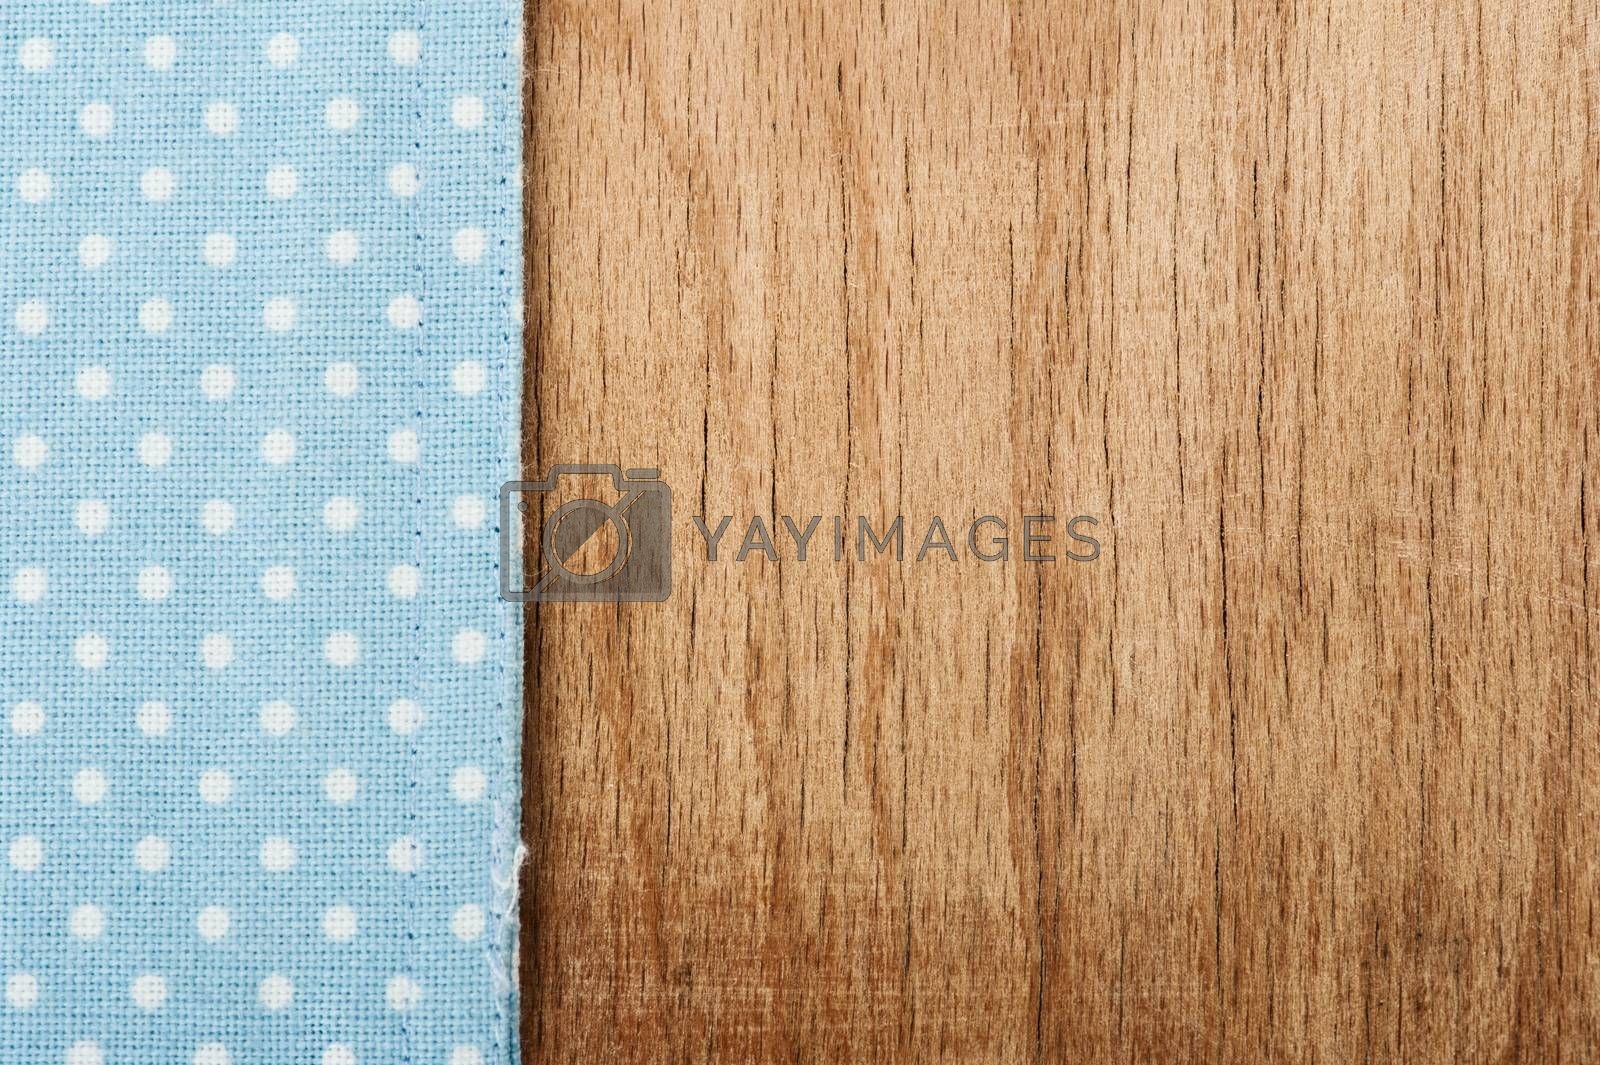 Background from tablecloth and wooden table. Vintage style